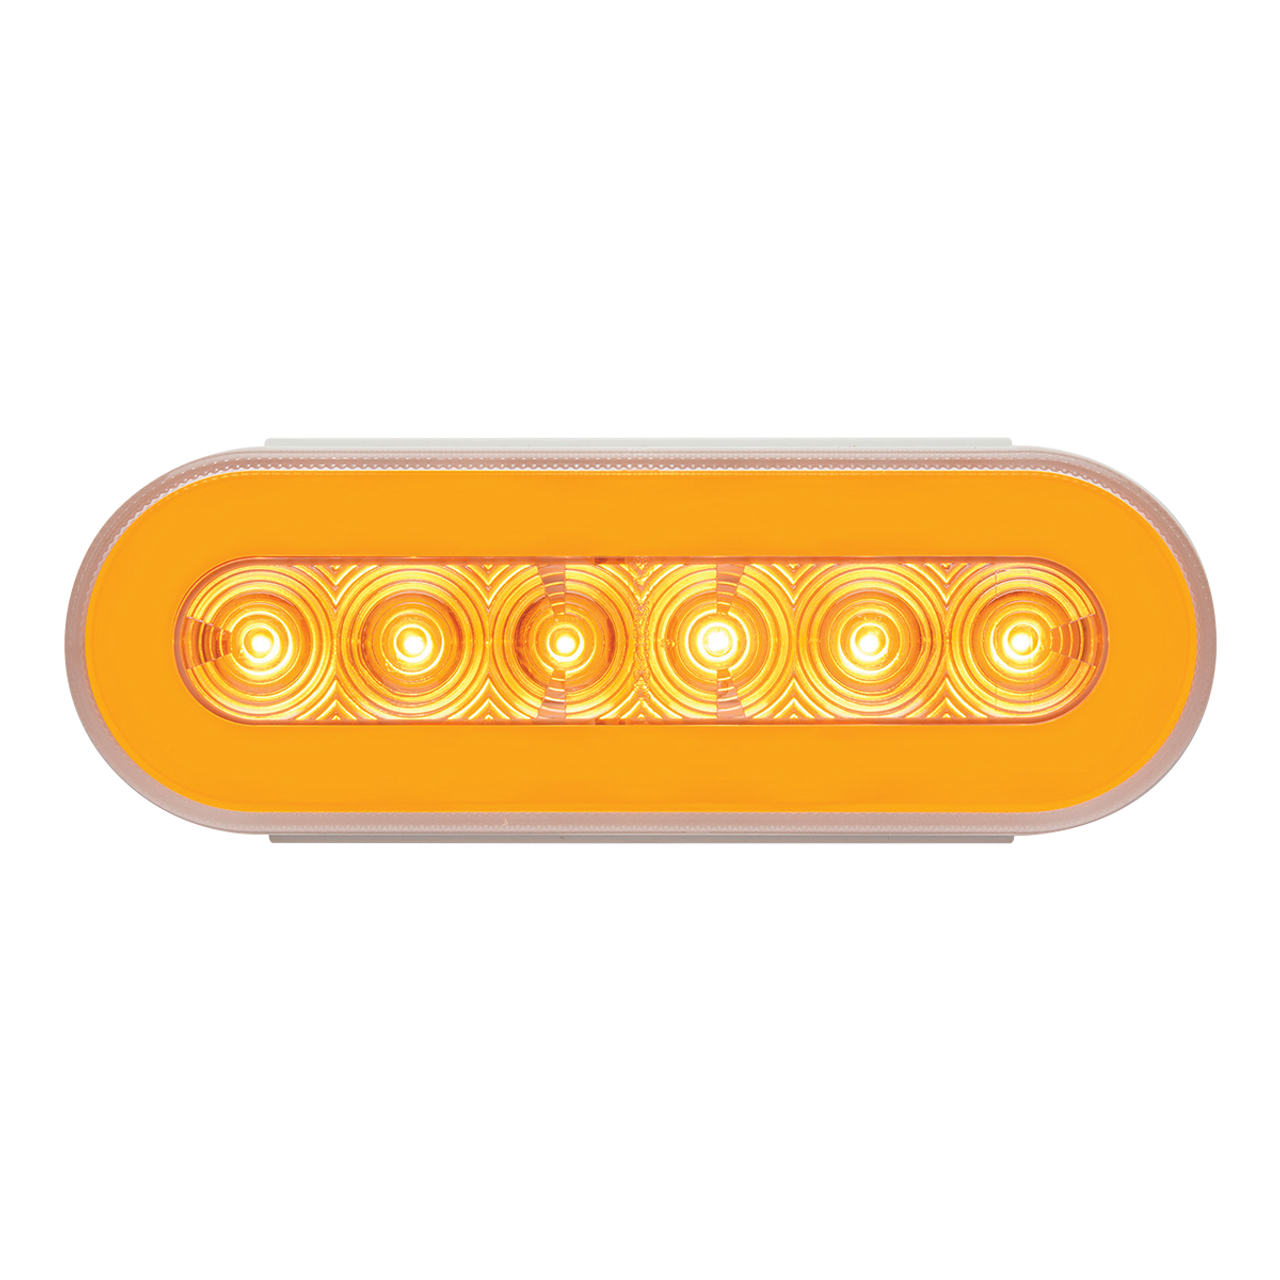 STL111ACBP --- Glolight Oval Sealed LED Amber Parking and Rear Turn Signal